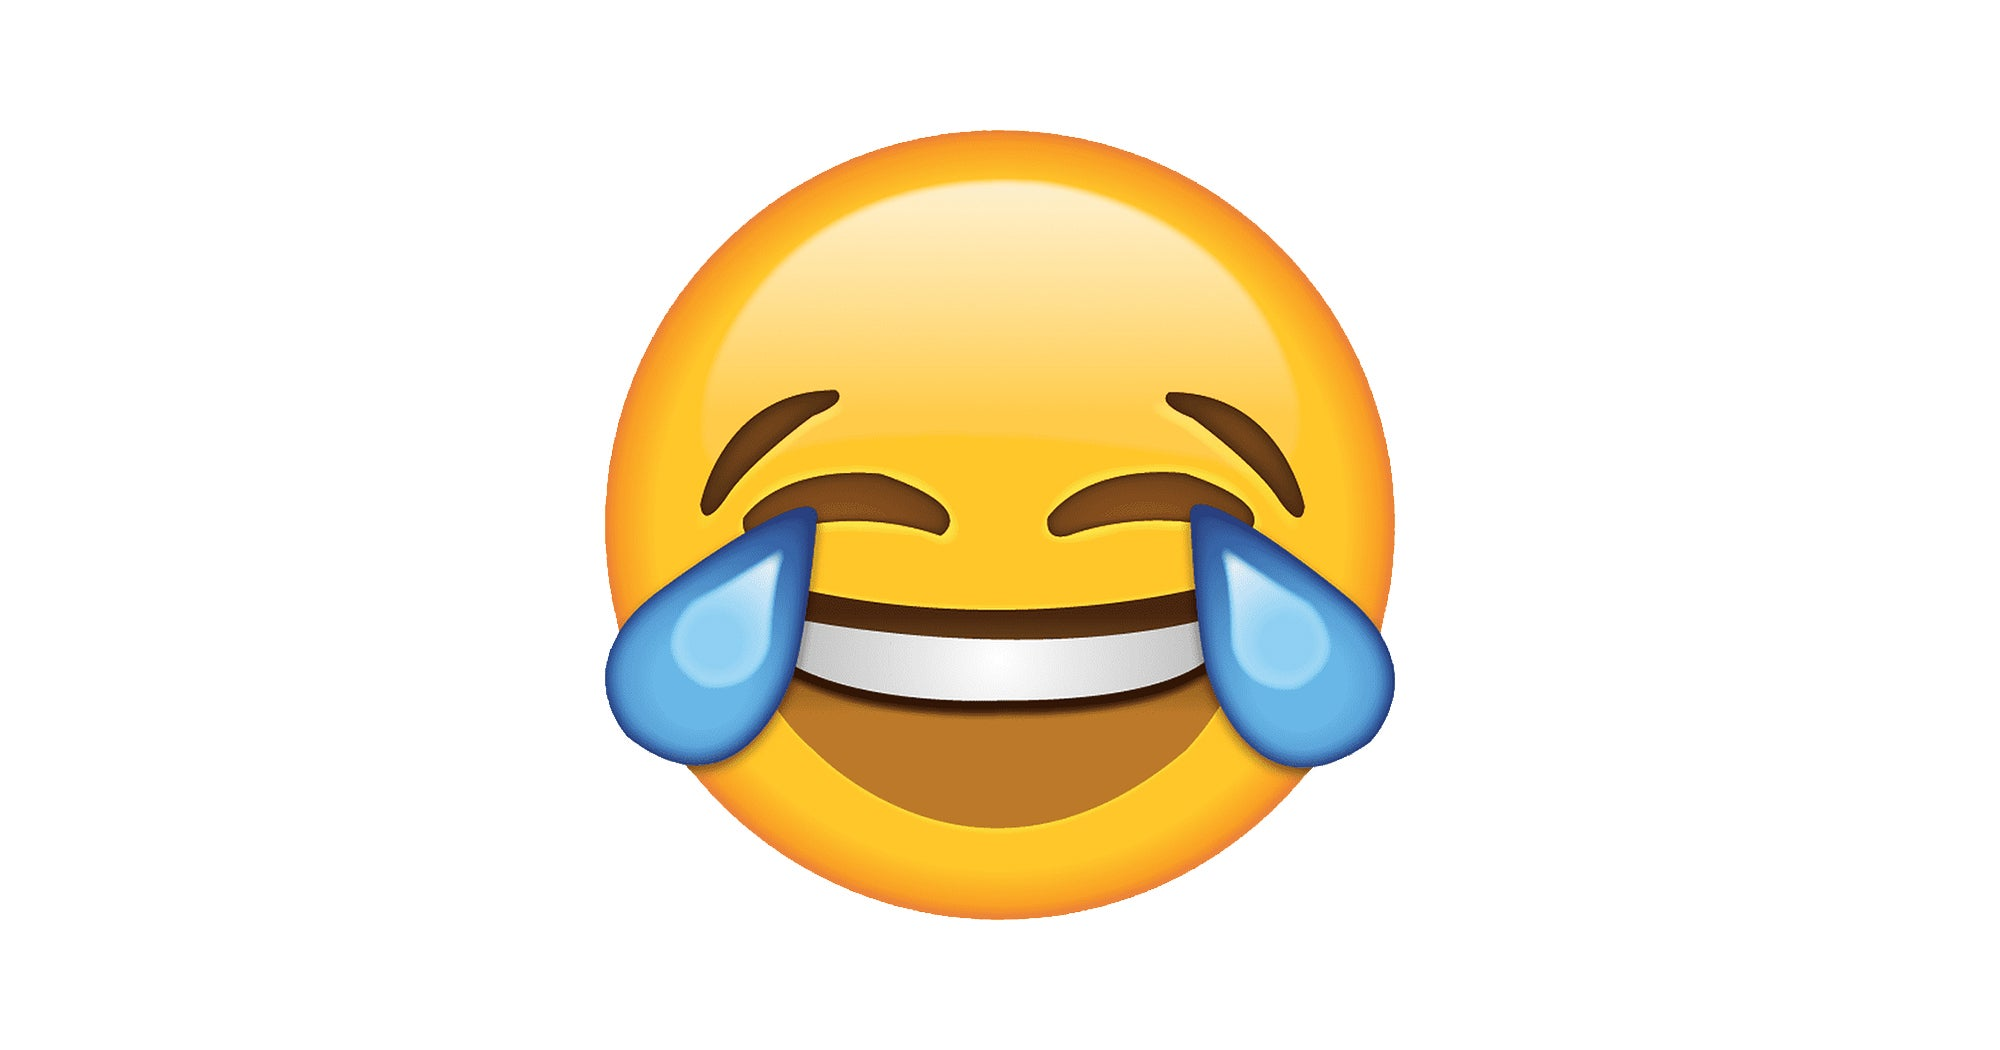 Millennials, Stop Worrying About The Laugh-Cry Emoji